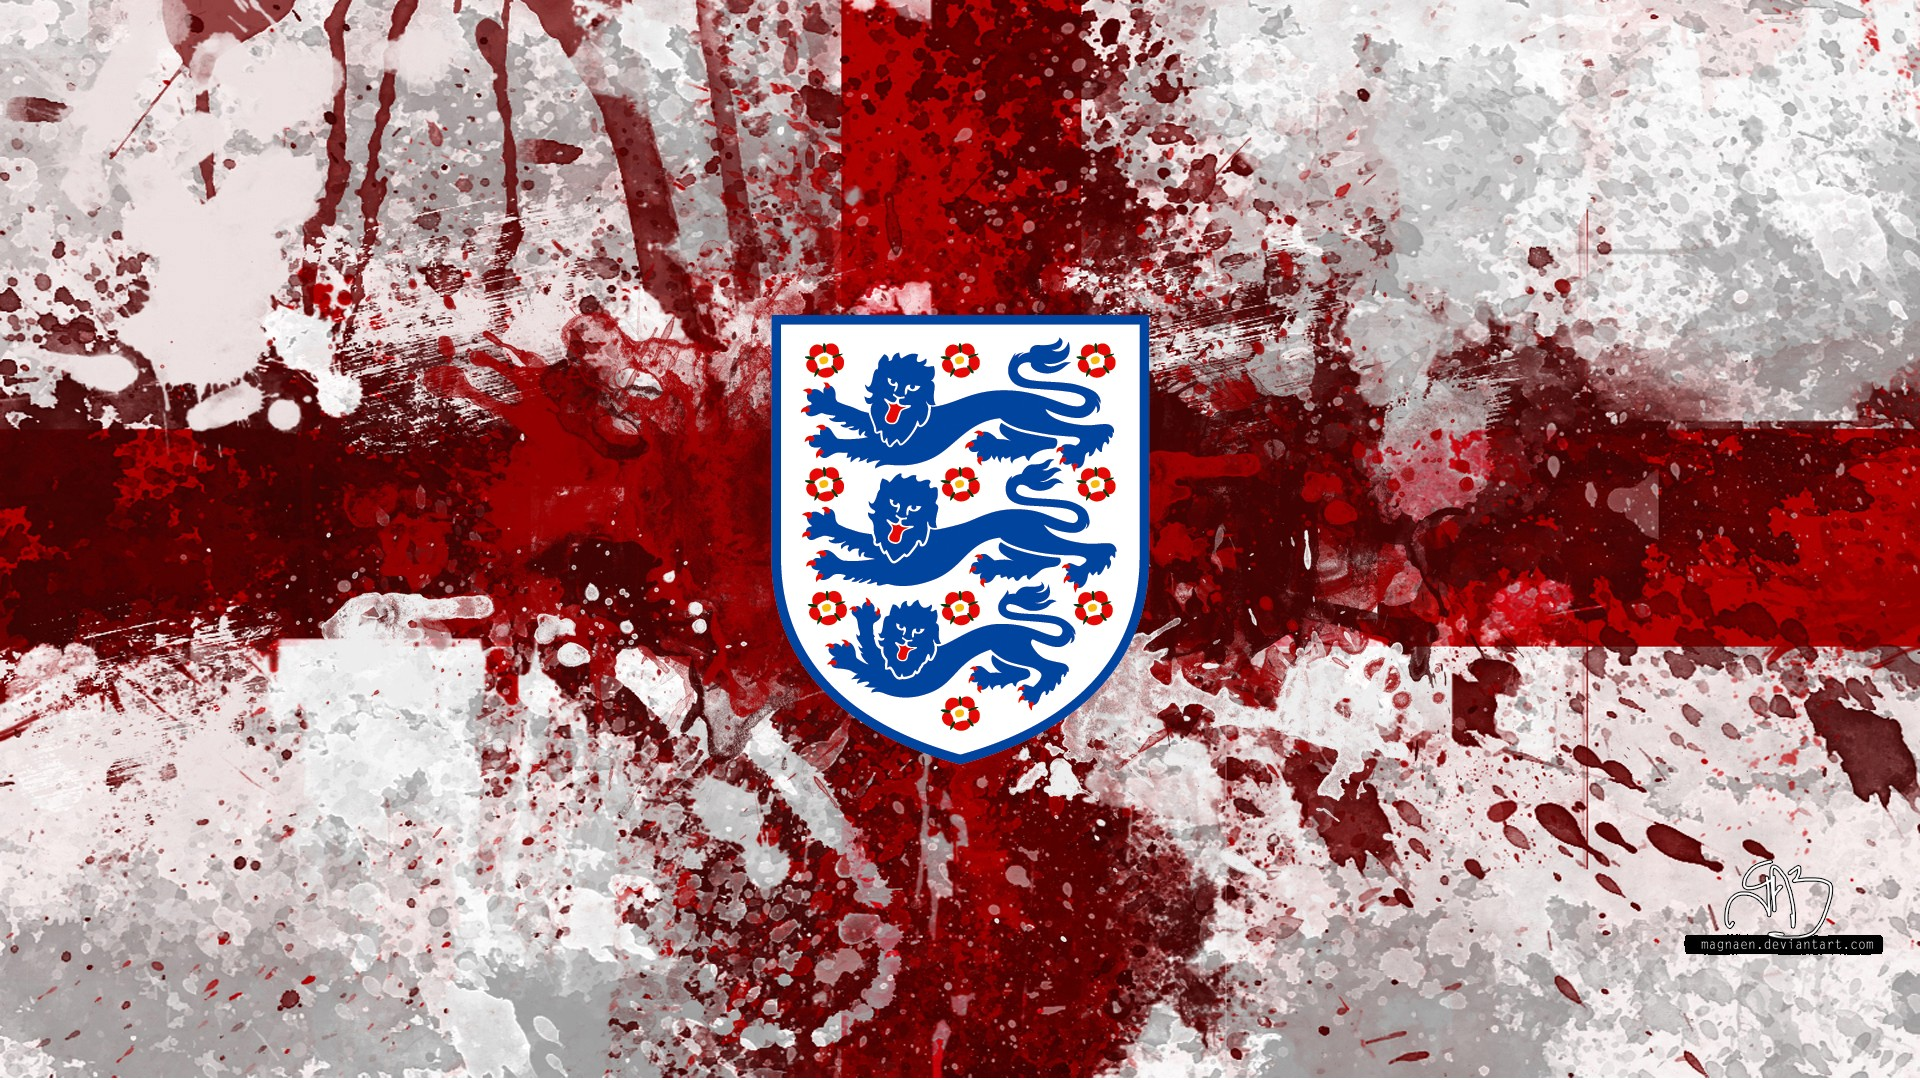 2018 england world cup wallpaper - 2018 football wallpapers